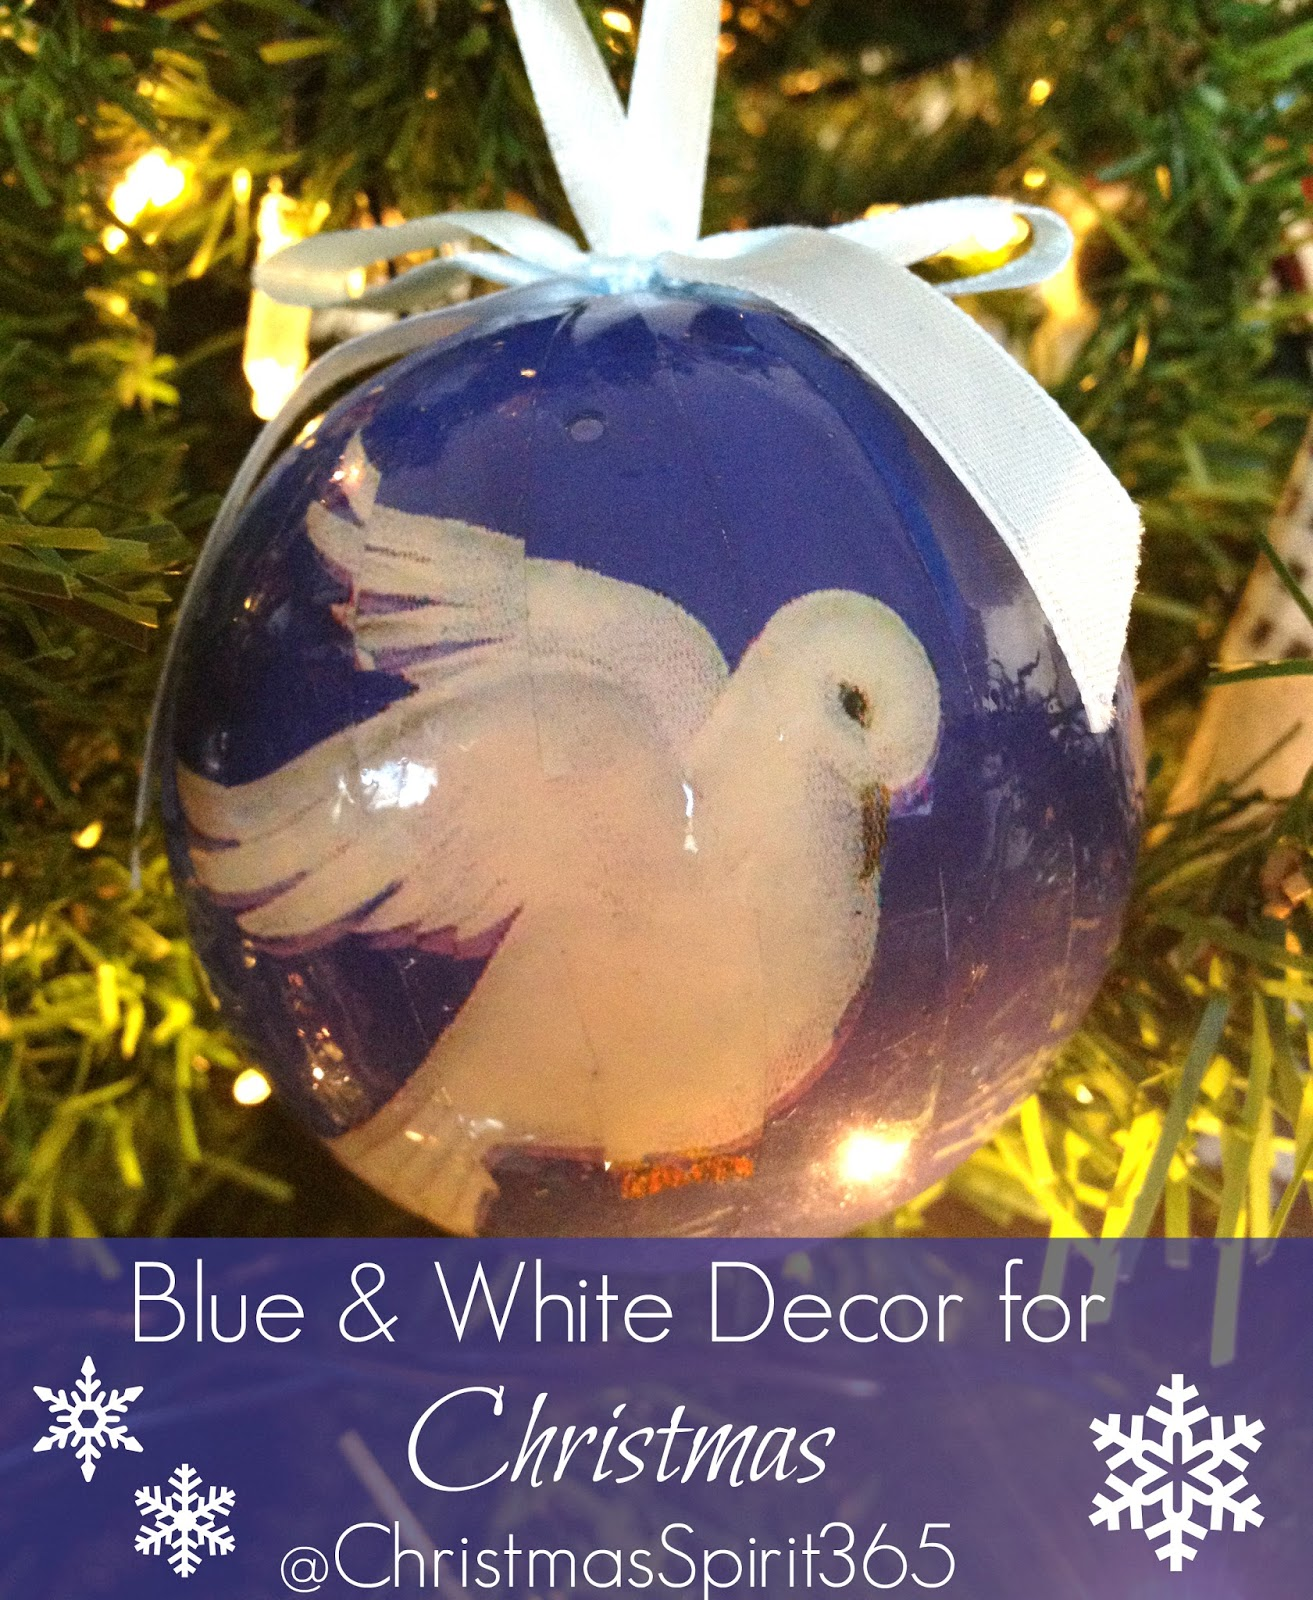 Decorating ideas for a classic blue and white Christmas.